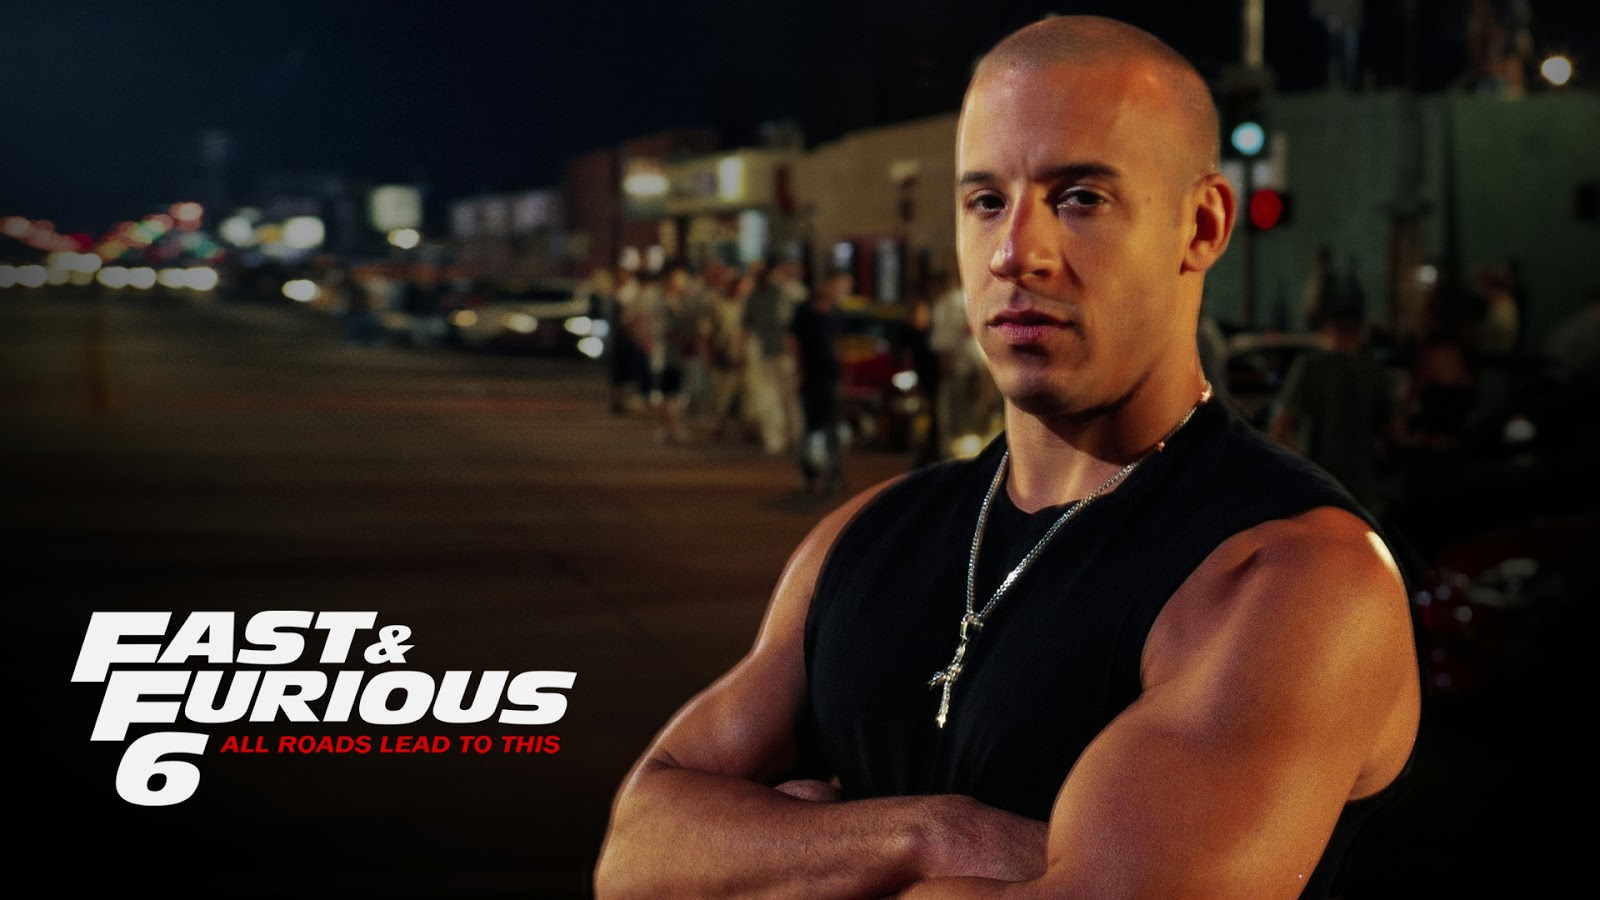 Vin diesel fast and furious biography and photograph wallpaper hd